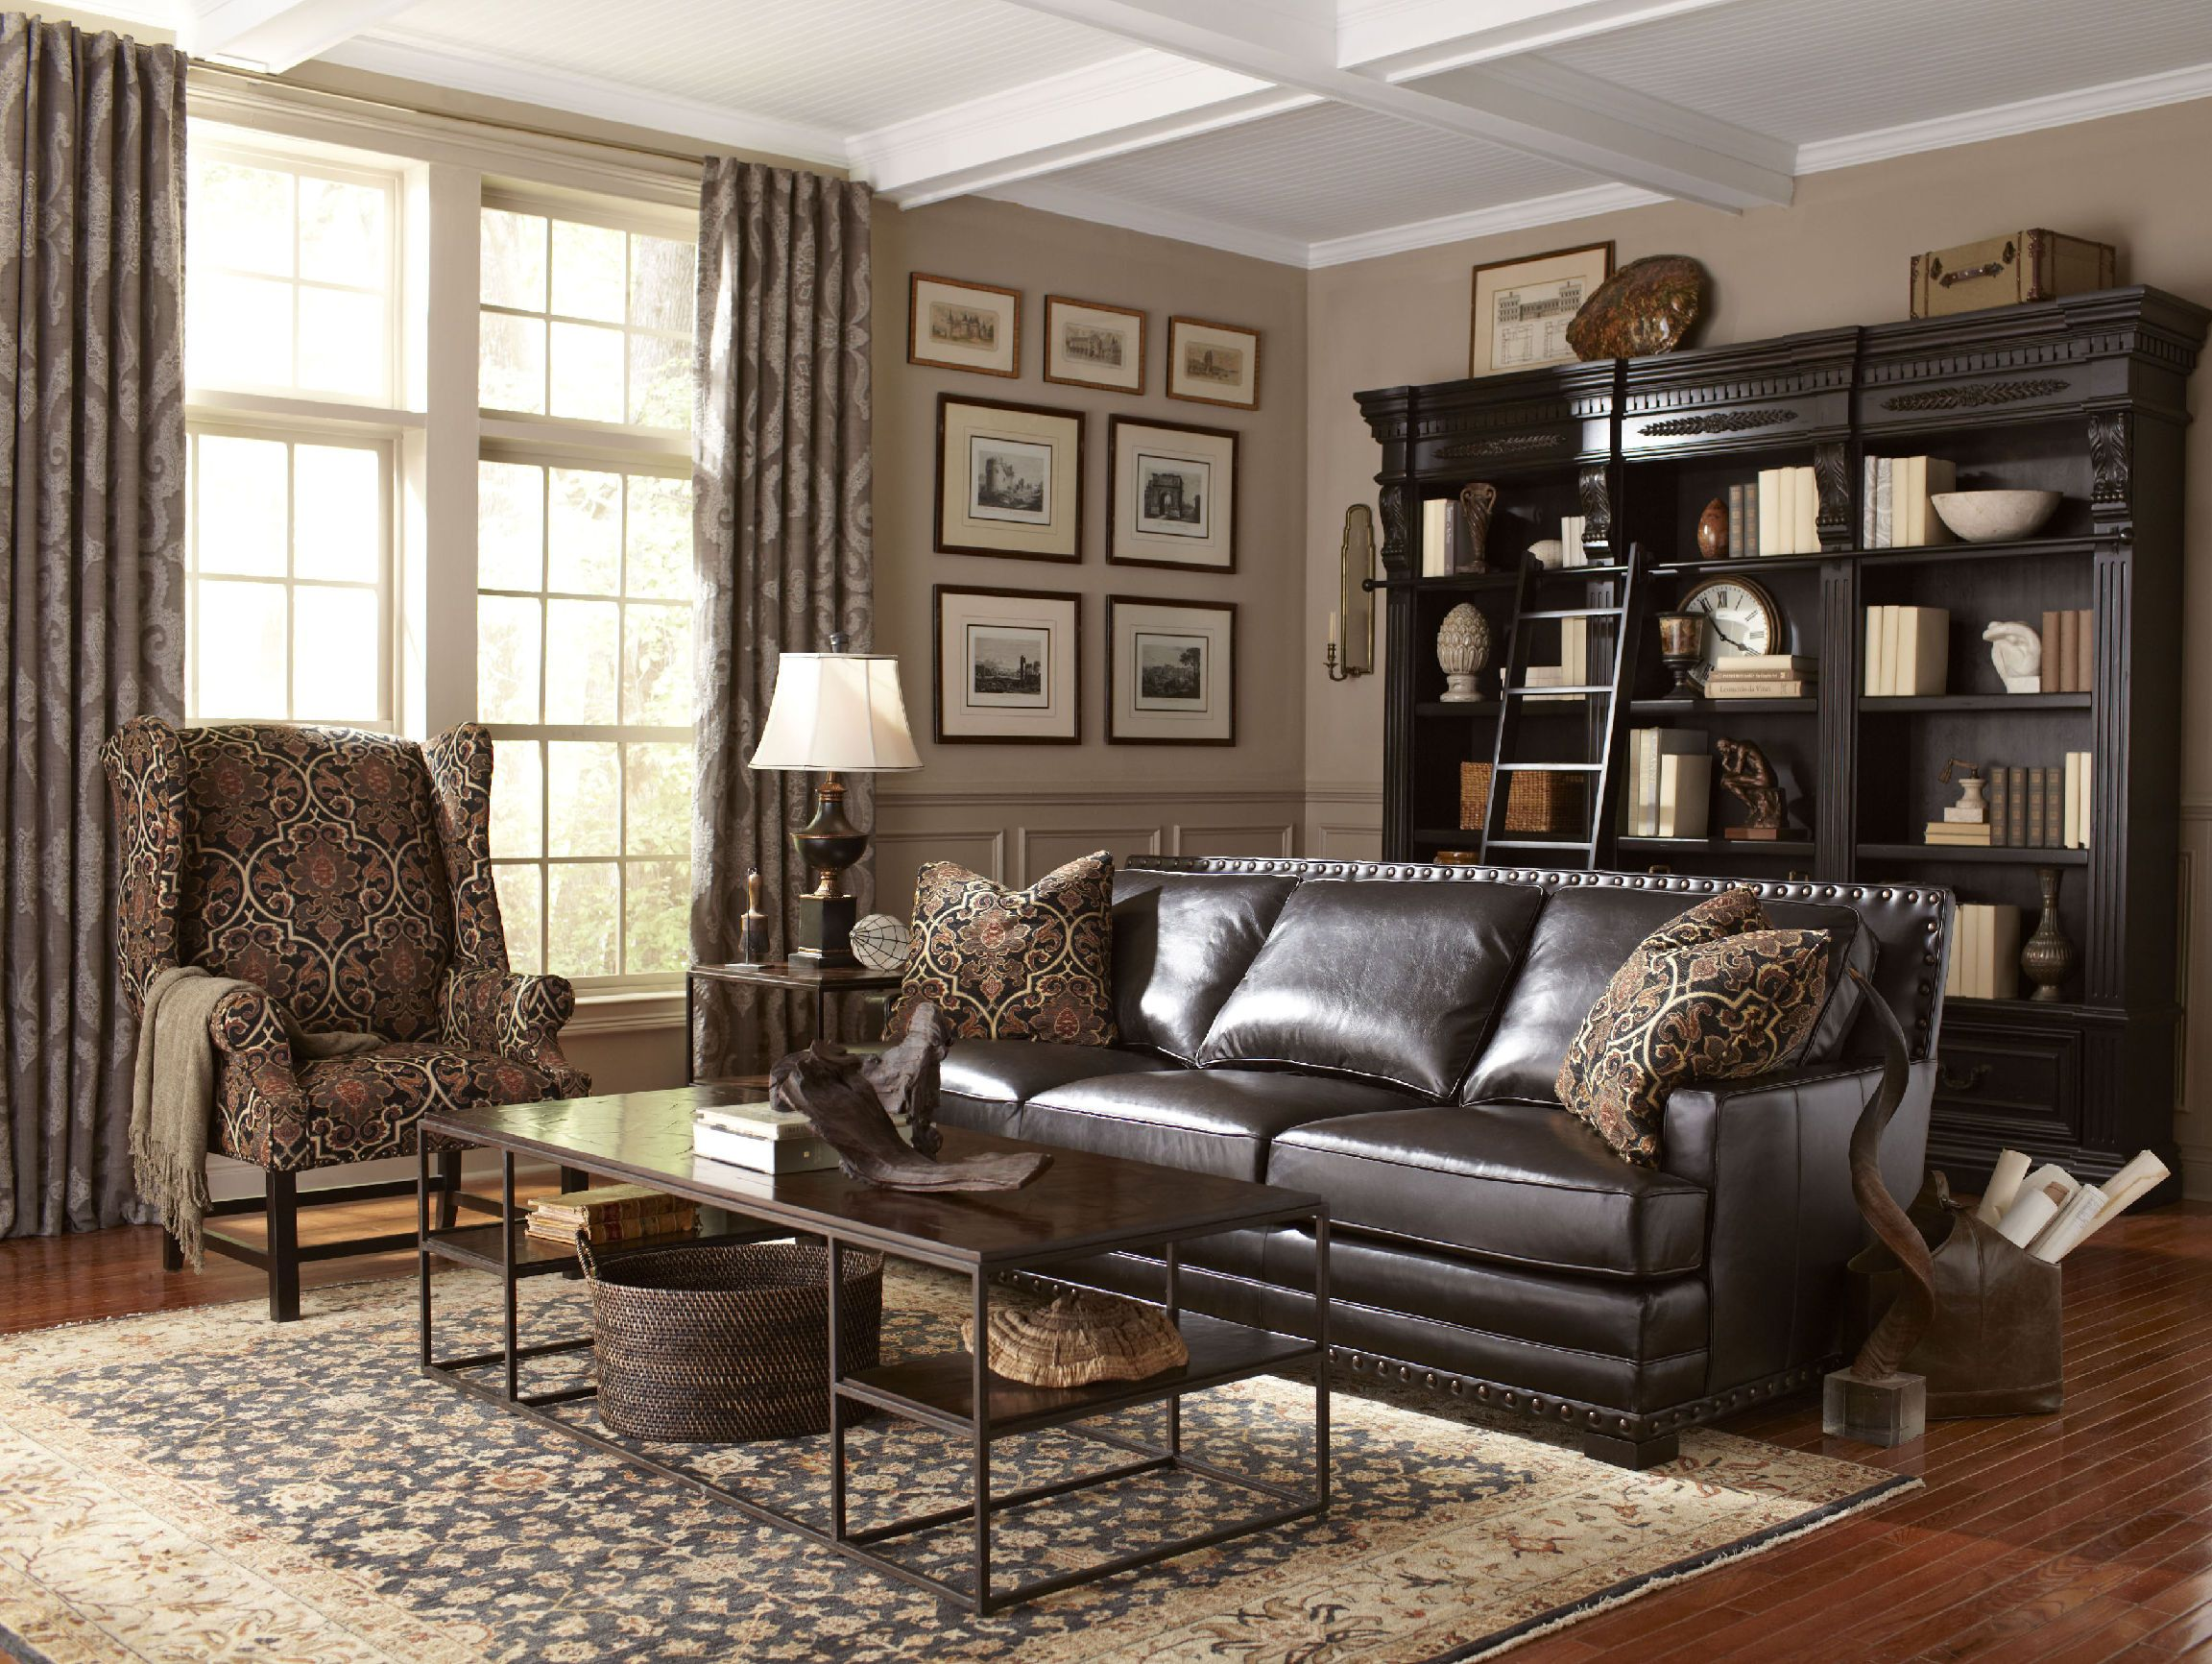 Bernhardt Fudge Top Grain Semi Aniline Leather Sofa Has Generous Down Blend  Seating, Large Track Style Arms And Nail Head Trim.